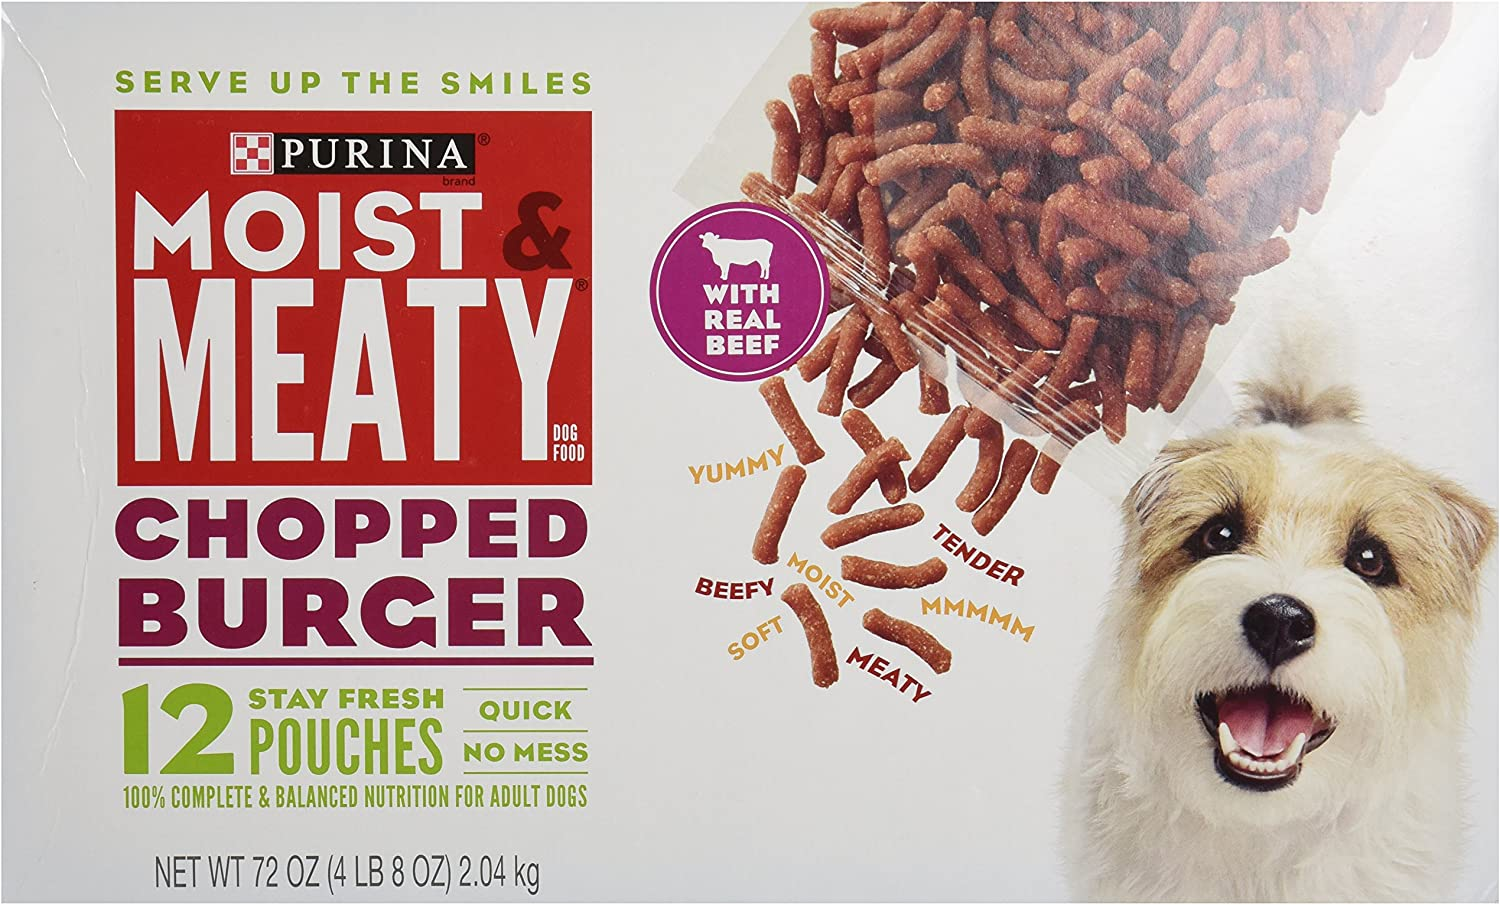 Purina Moist Meaty Dog Food Chopped Luxury goods Import Pouches oz Burger 12 6